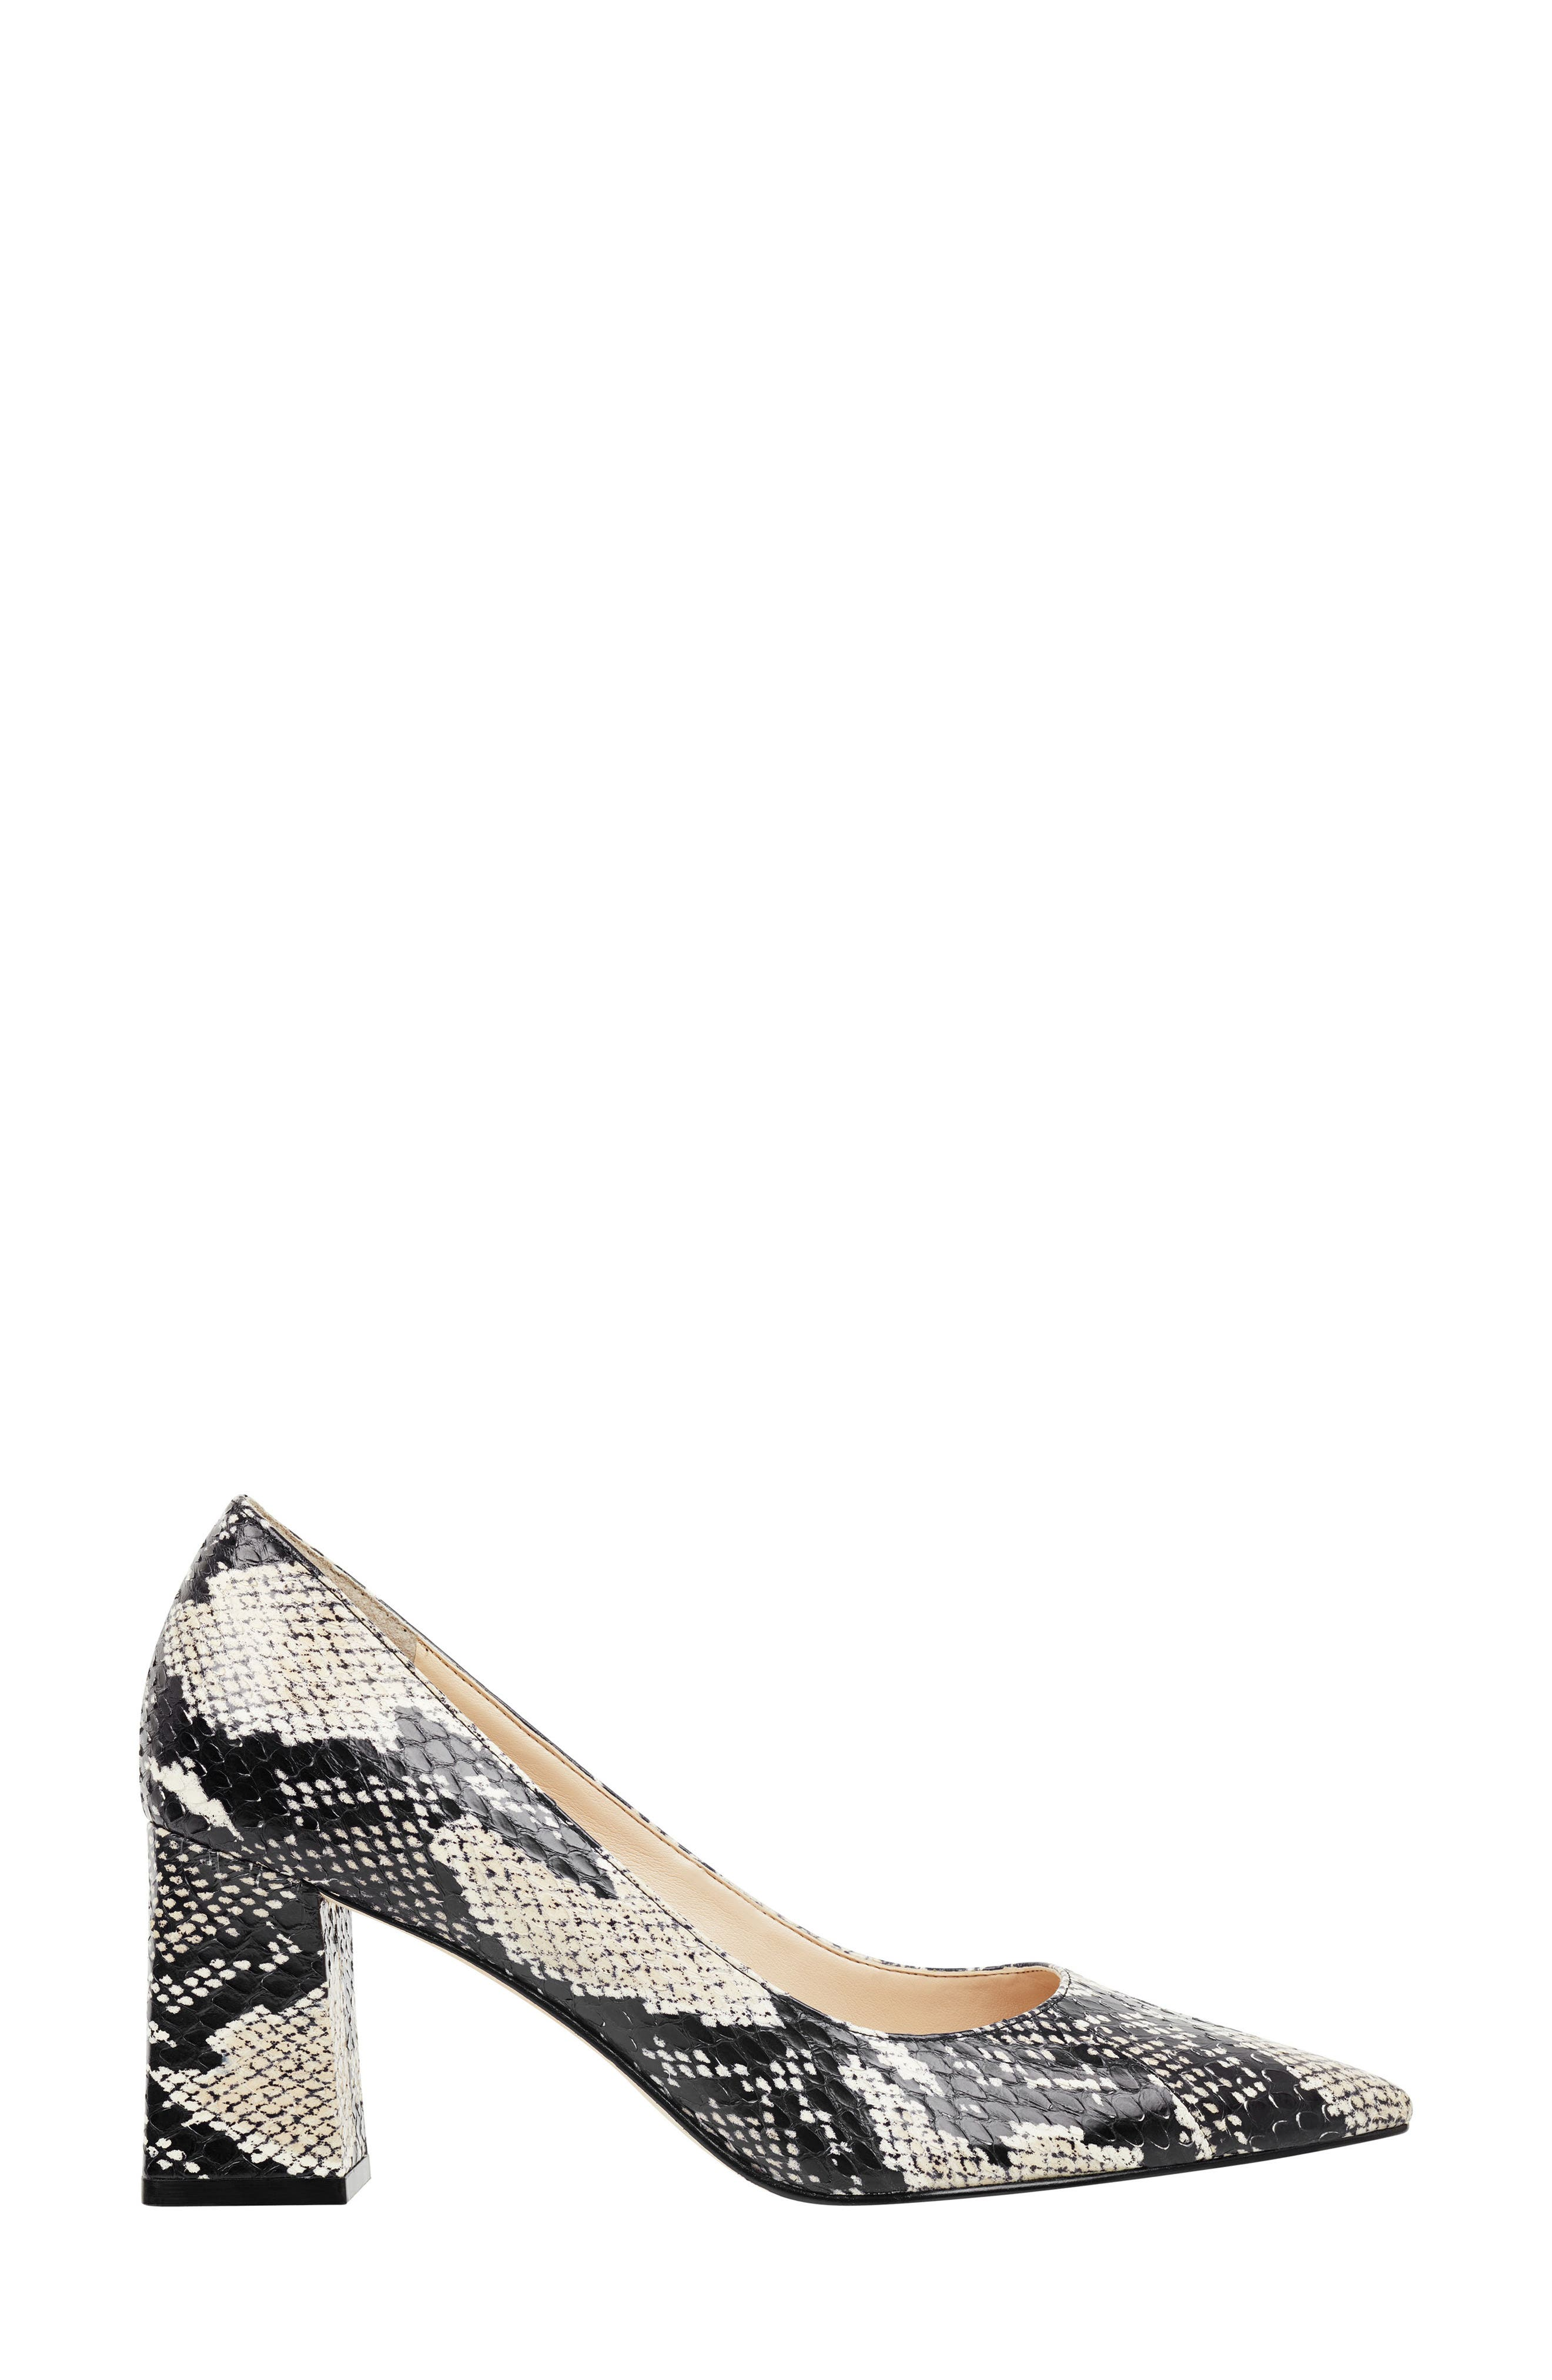 'Zala' Pump,                             Alternate thumbnail 3, color,                             BEIGE/ BLACK SNAKE PRINT